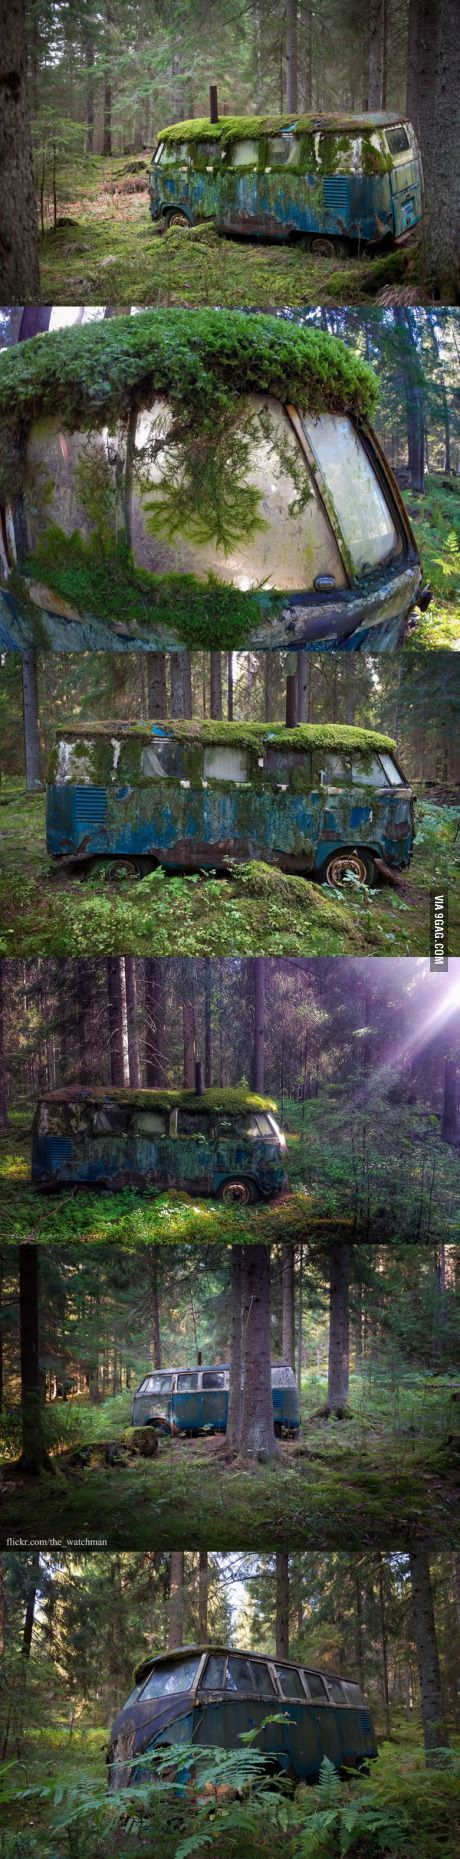 Abandoned VW bus that was once someone's home, deep in the forests of Norway.: